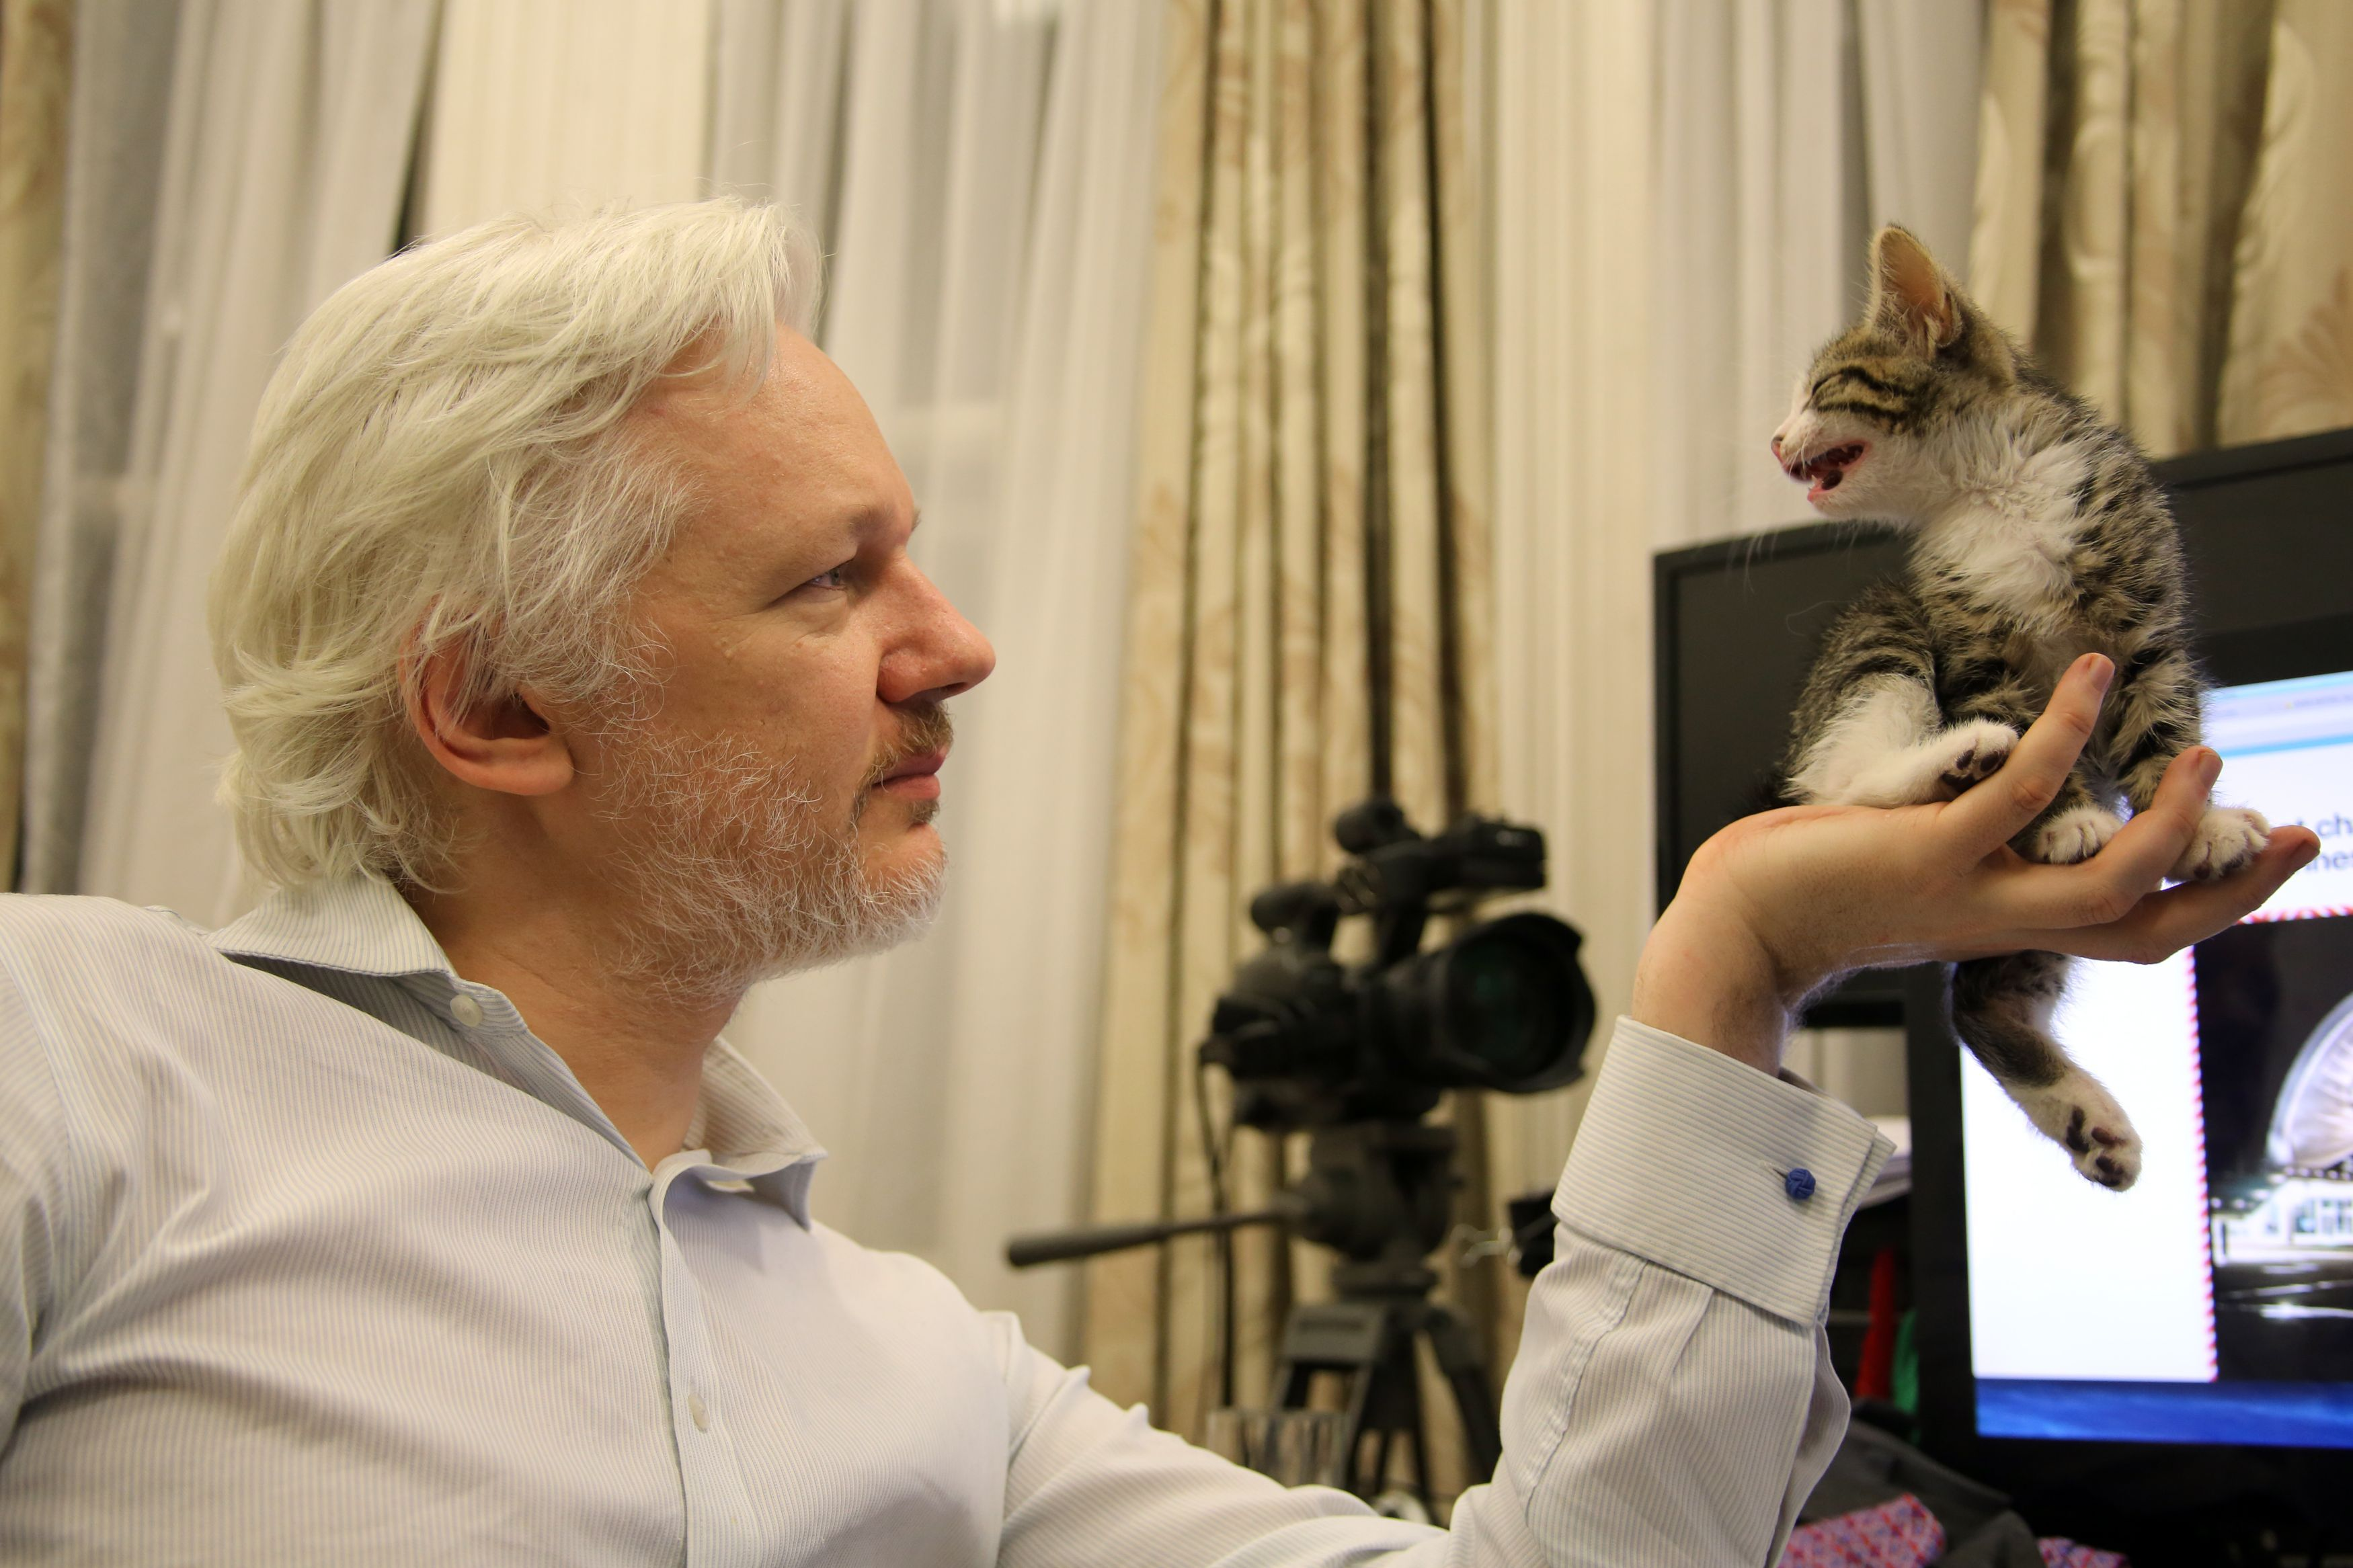 This is an undated handout photo issued by Sunshine Press made available Tuesday May 10, 2016  of WikiLeaks founder Julian Assange with a kitten in Ecuador's embassy in London . It may not be so lonely for WikiLeaks founder Julian Assange in the embassy quarters he's called home for nearly four years. Now he has a kitten to keep him company.The kitten had not been named yet. (Sunshine Press/Wikileaks via AP)